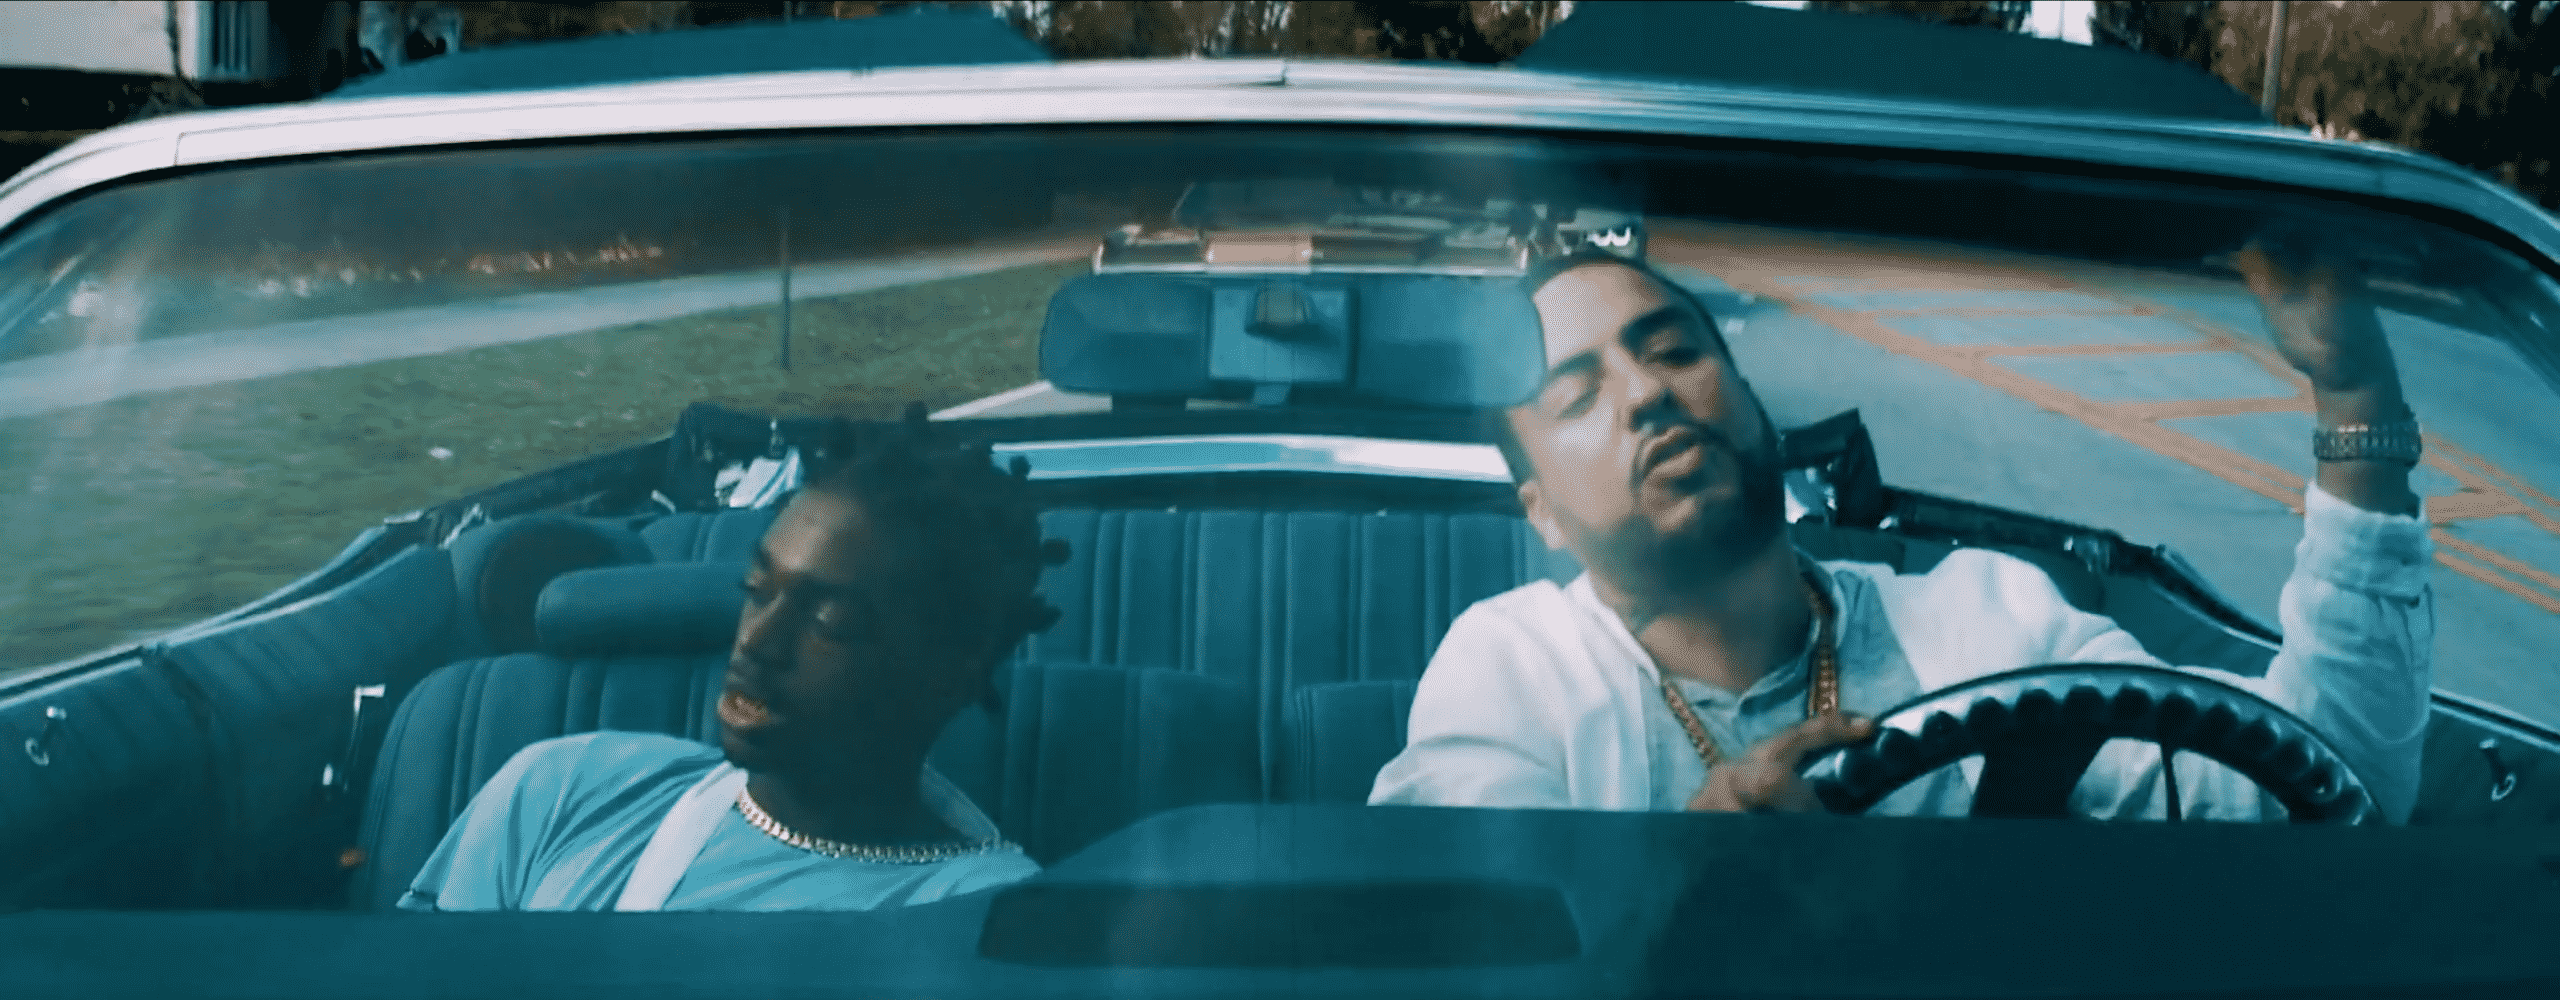 image french montana clip lockjaw